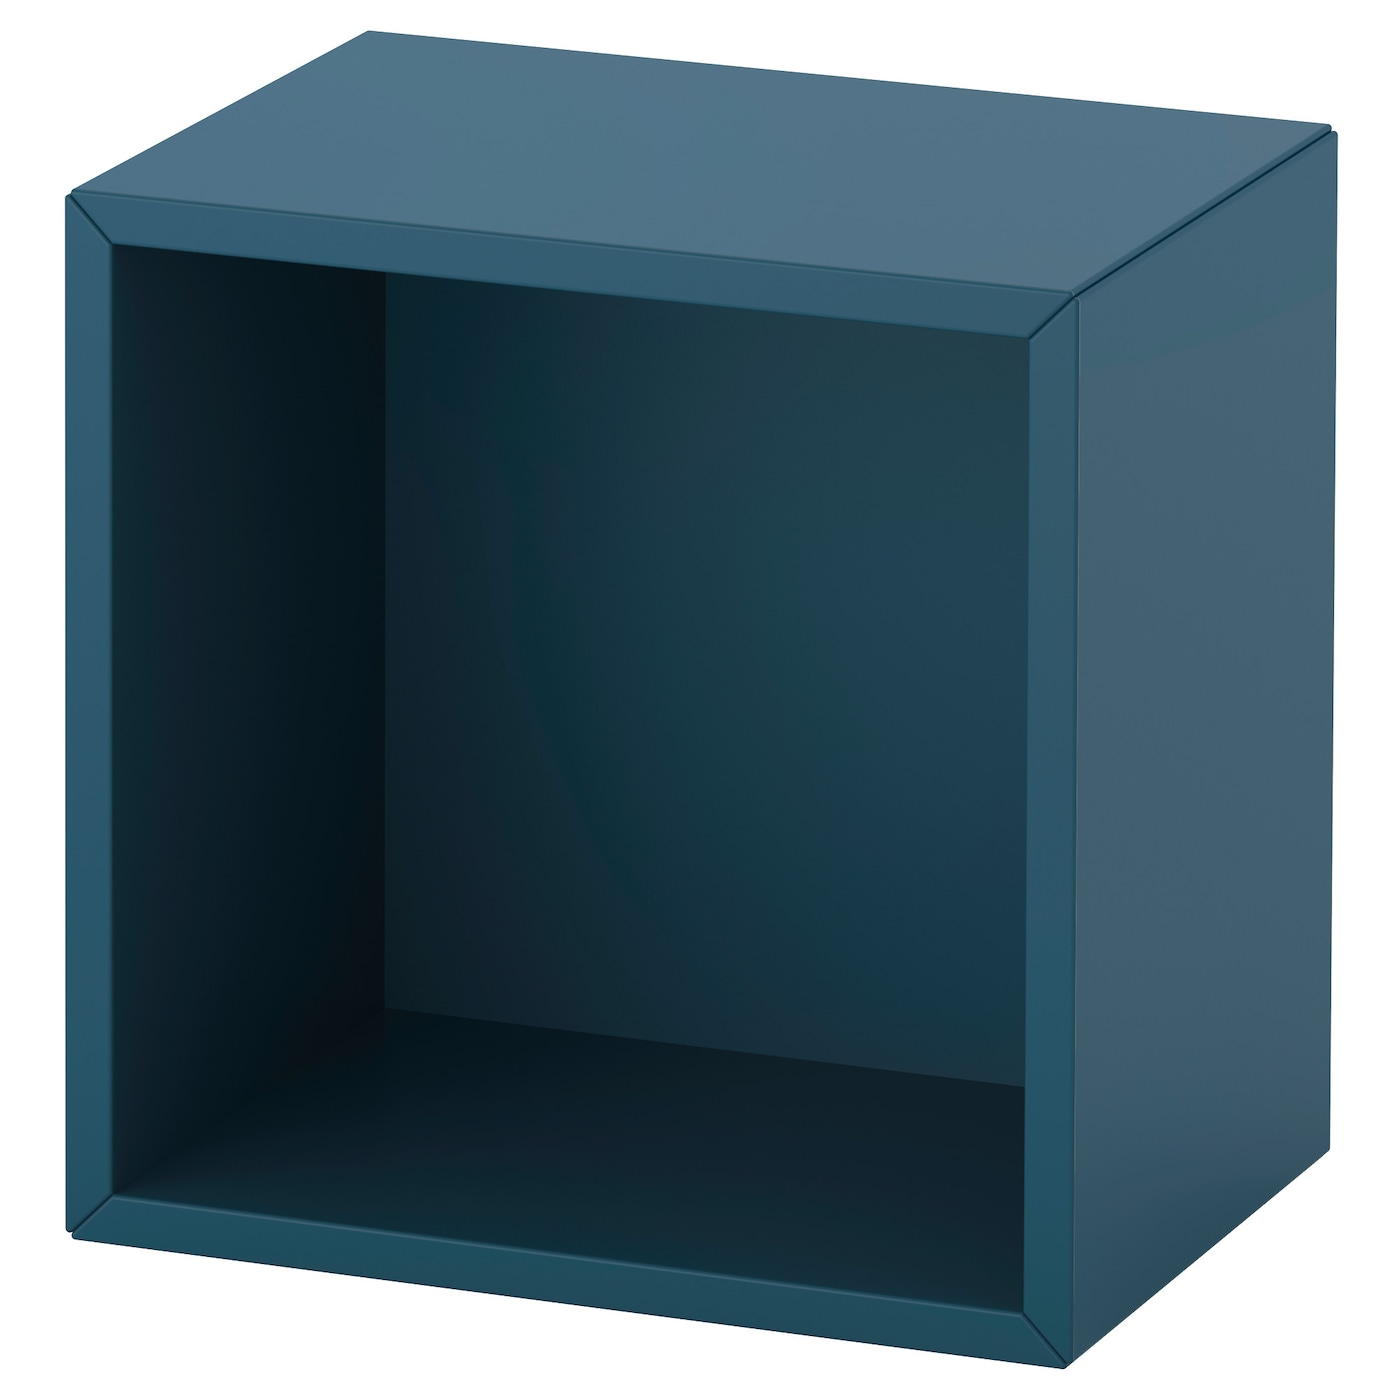 eket cabinet dark blue 35 x 25 x 35 cm ikea. Black Bedroom Furniture Sets. Home Design Ideas